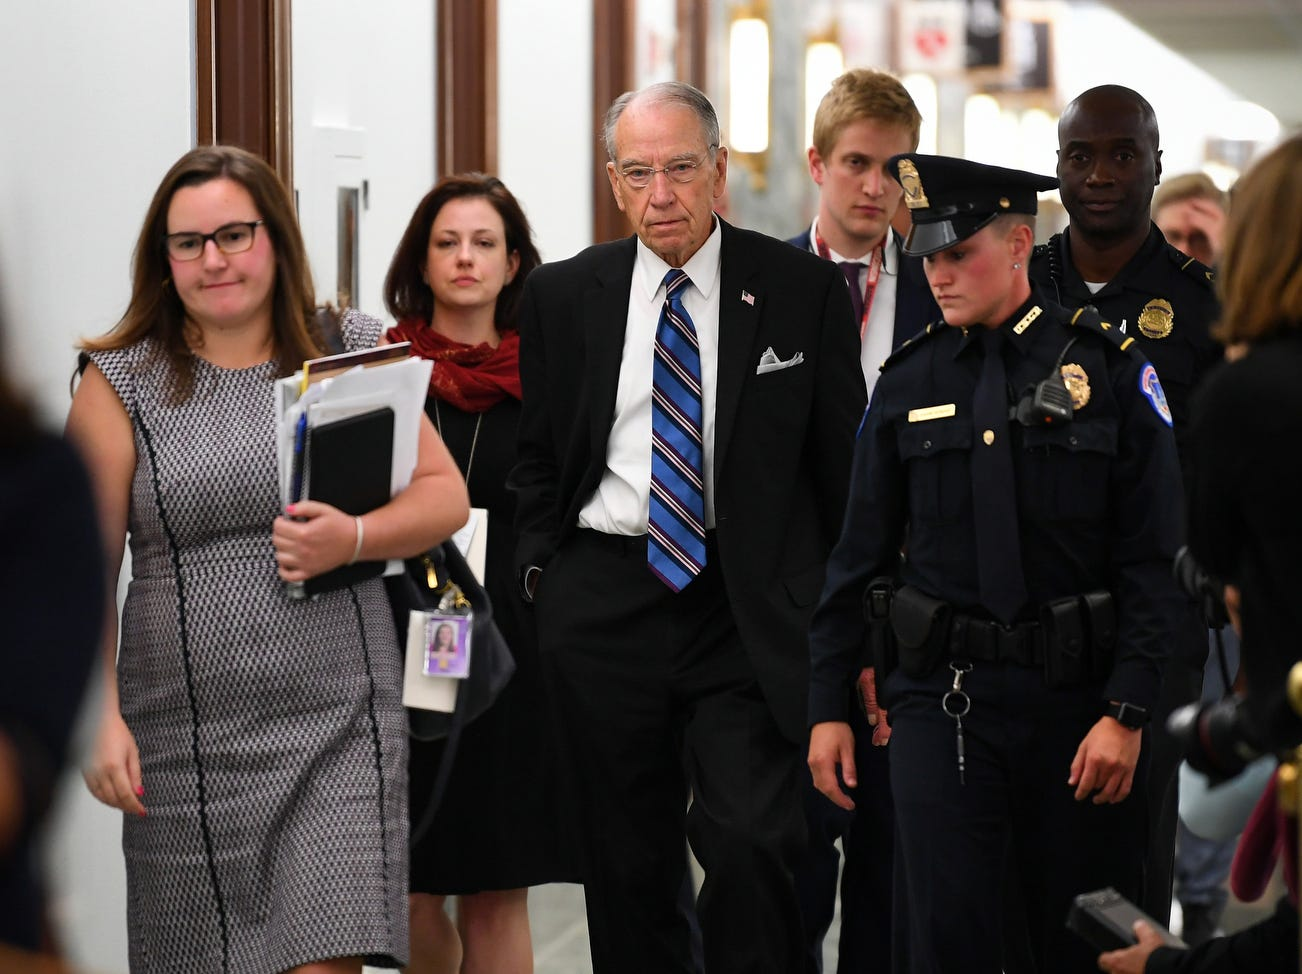 Senator Chuck Grassley, chairman of the Senate Judiciary Committee, walks into the hearing room following a 15 minute break as Supreme Court nominee Brett Kavanaugh testifies in front of the Senate Committee, Thursday.